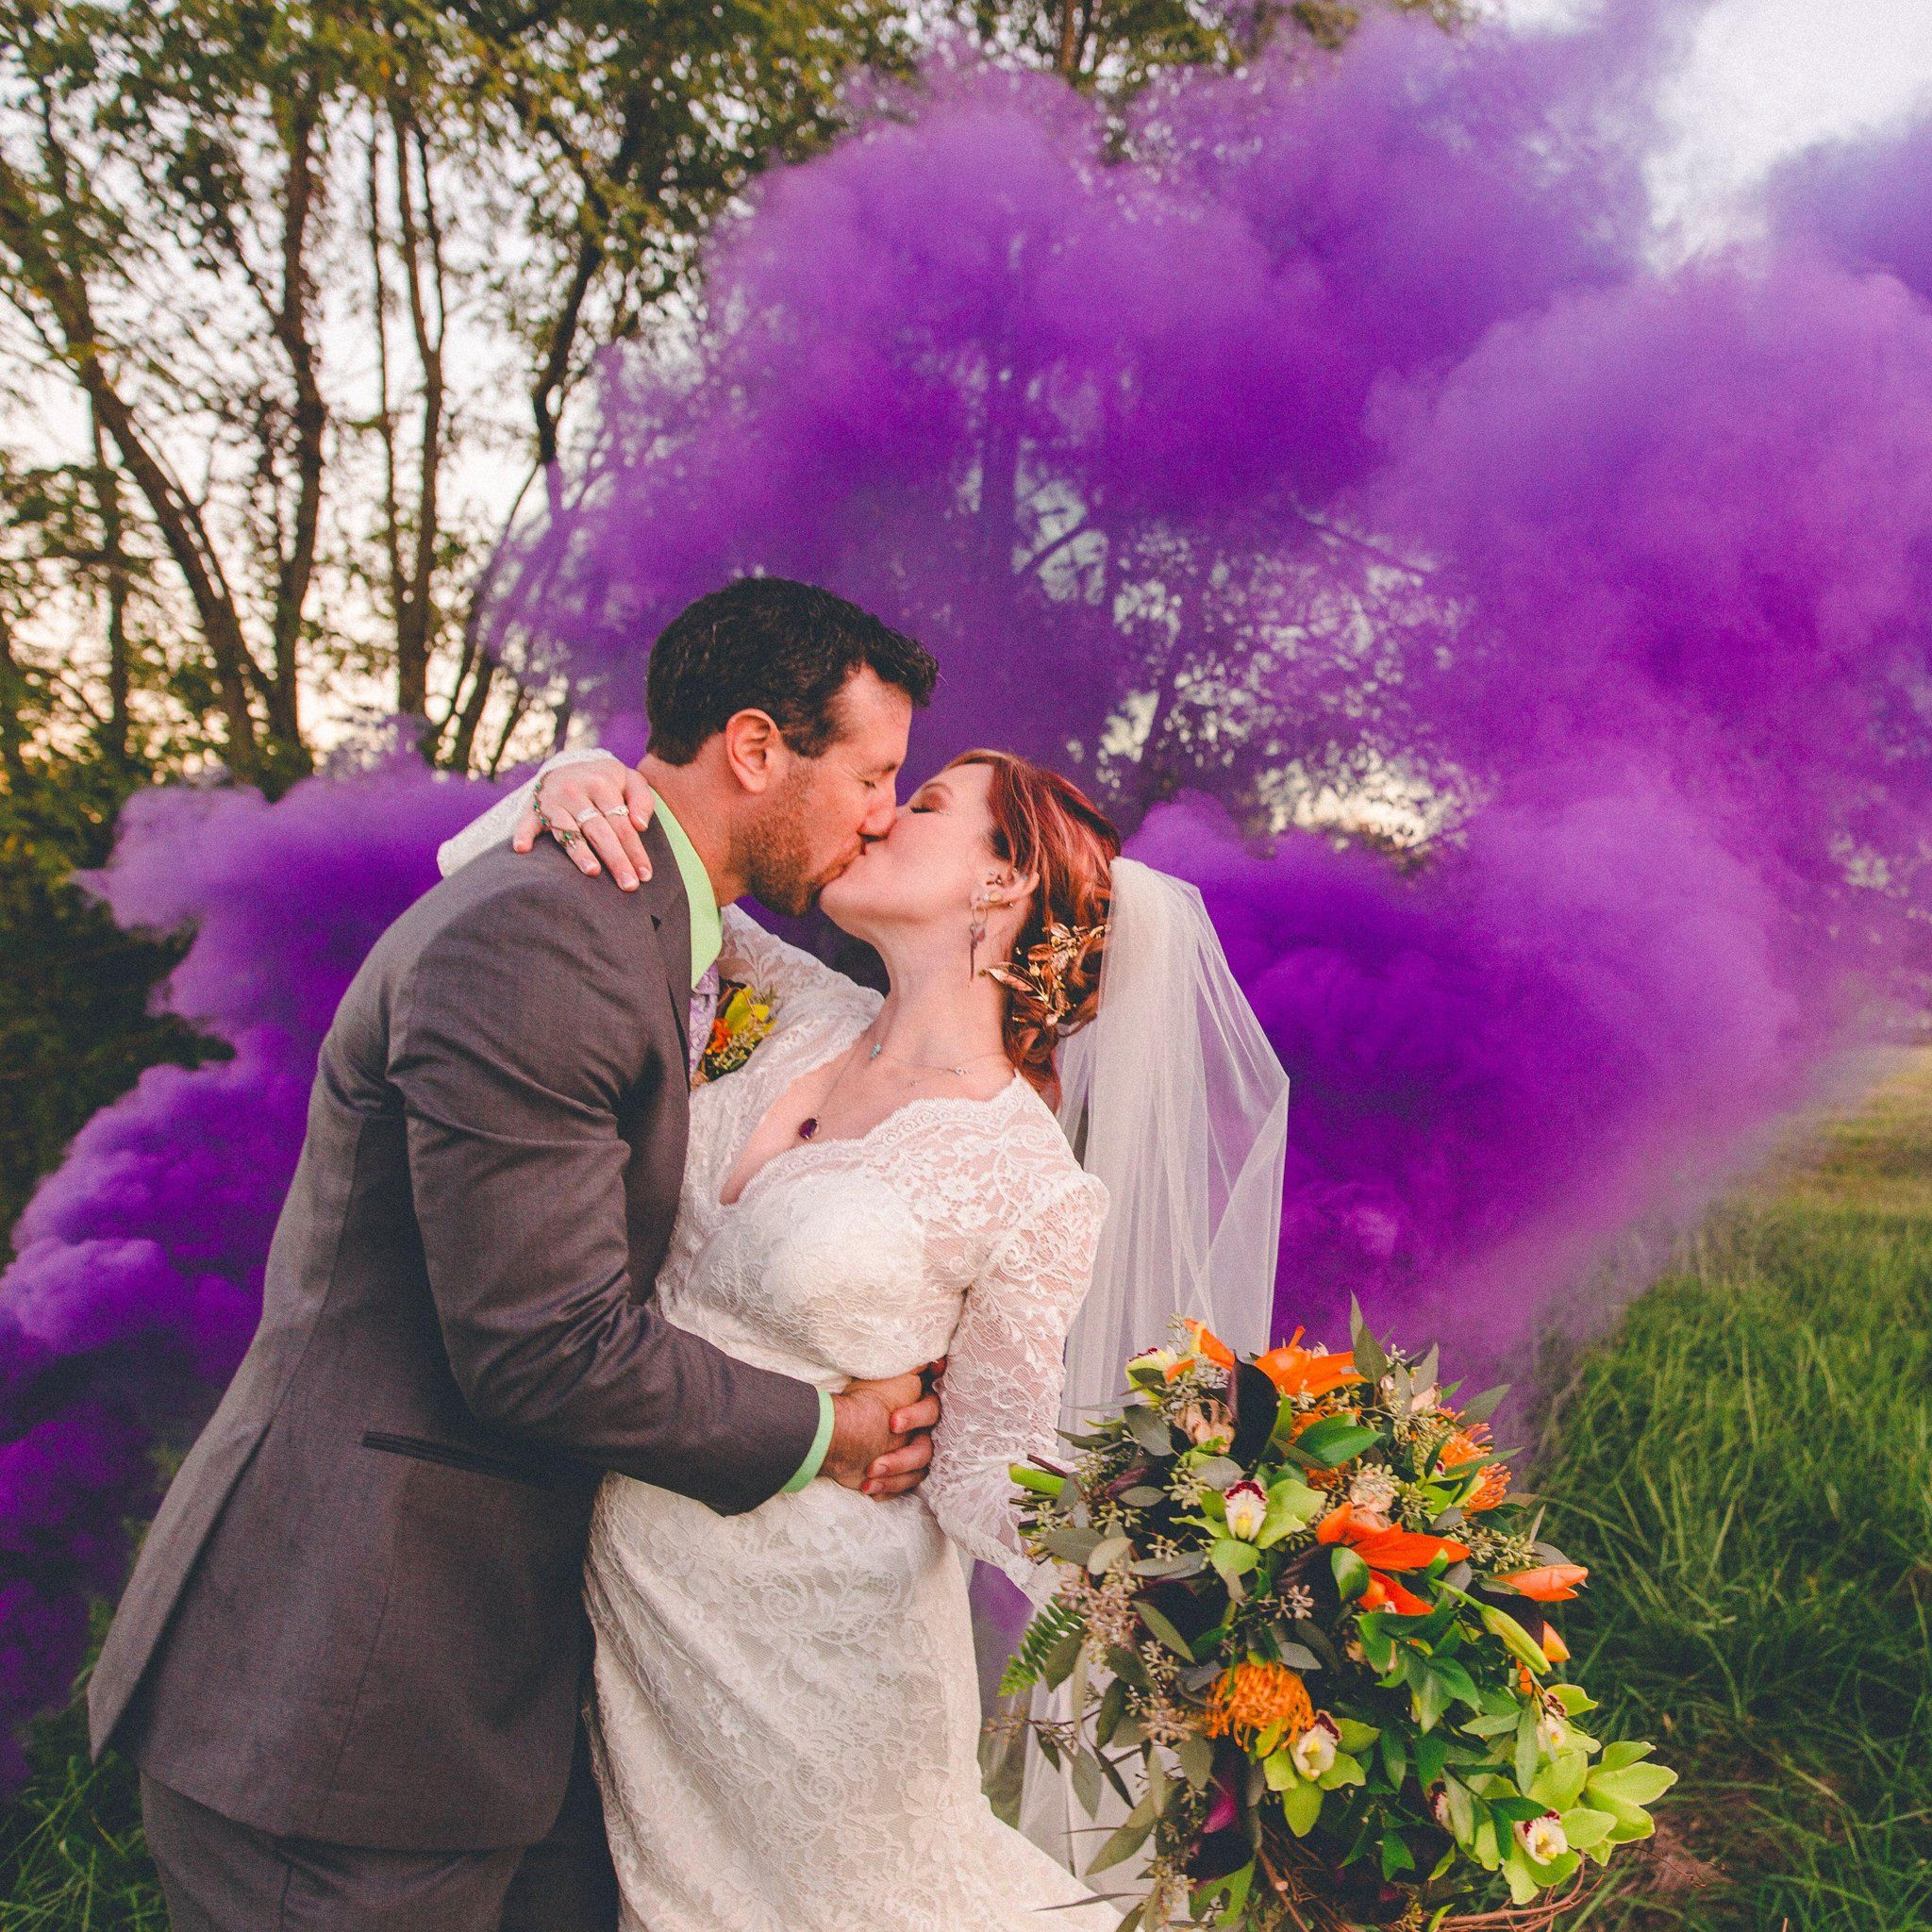 PHOTOS: A Stunning Outdoor Ceremony With Loads Of Games